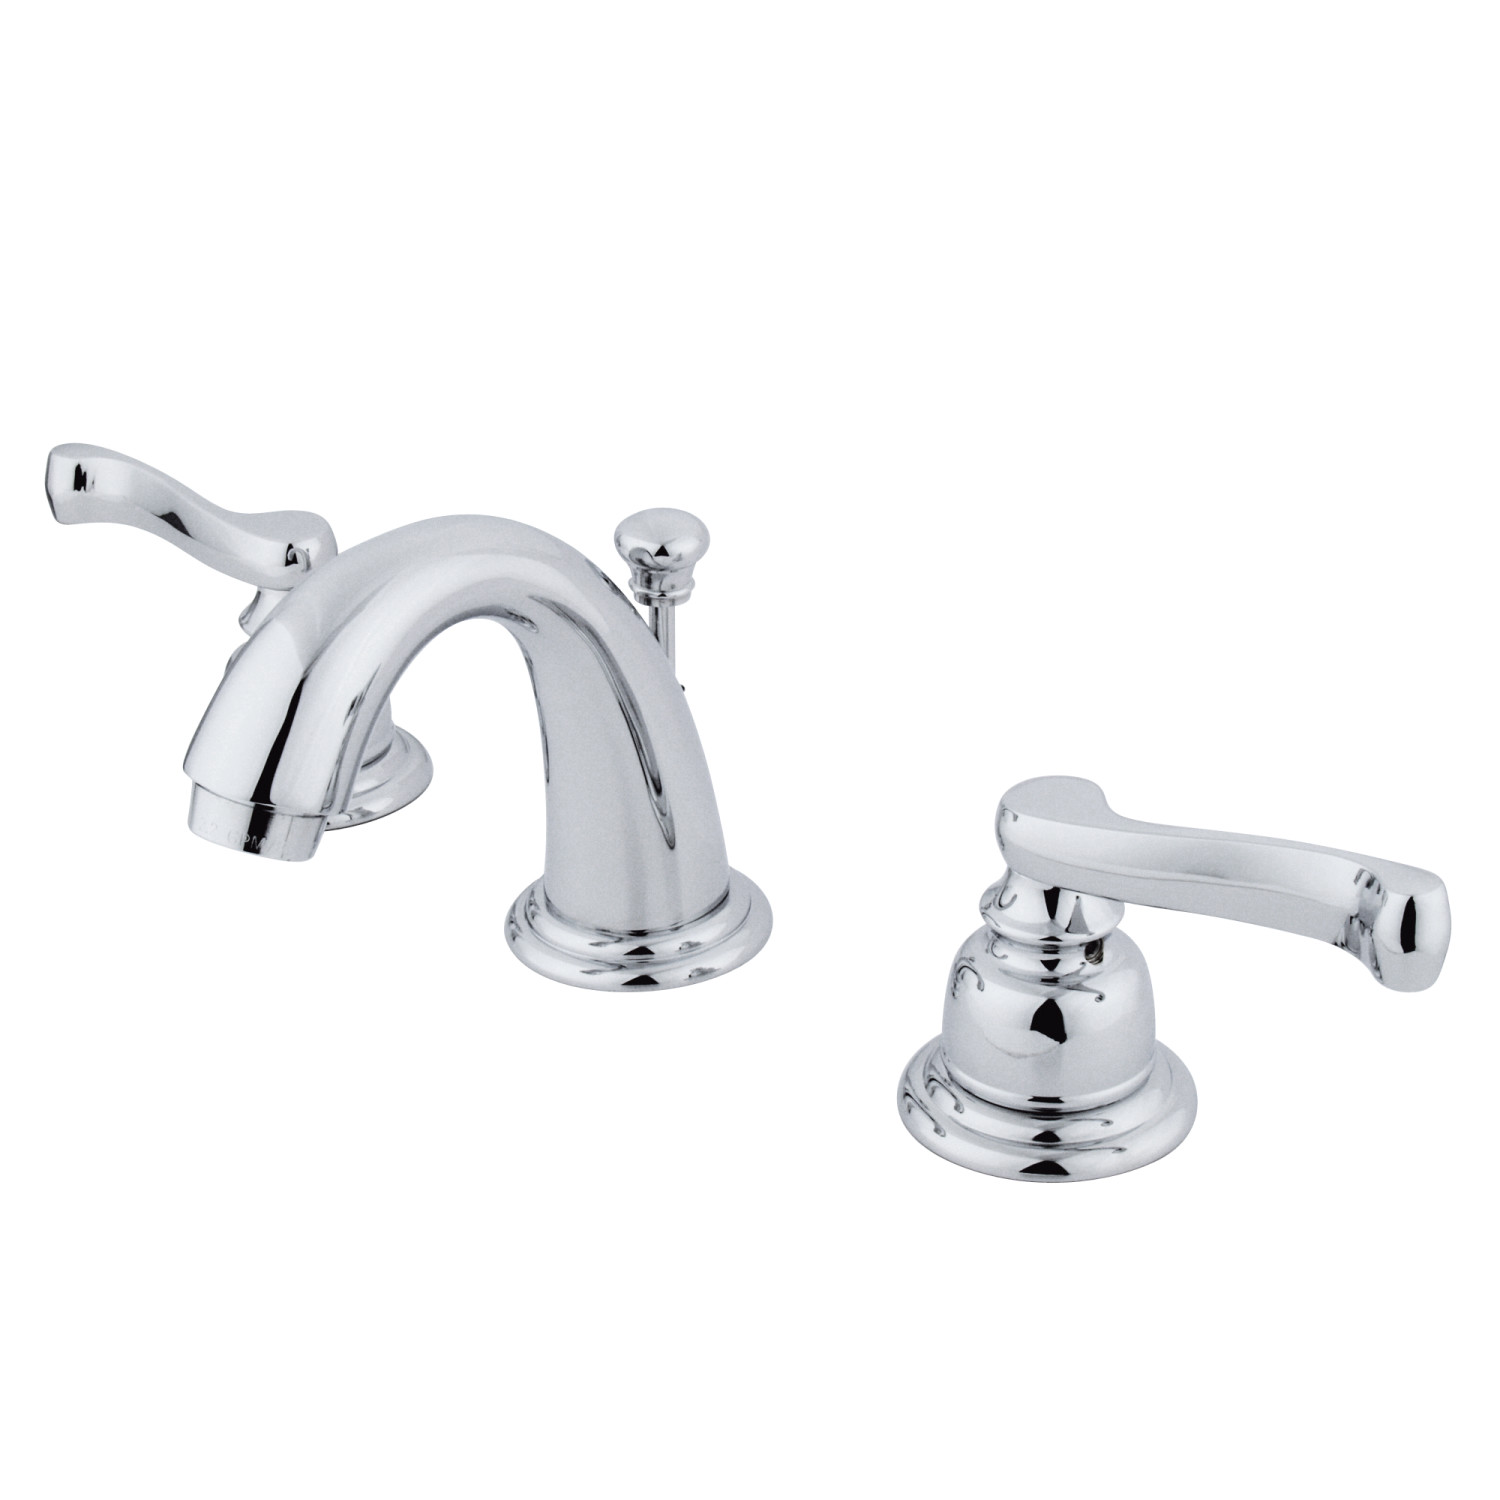 Traditional Two-Handle 3-Hole Deck Mounted Widespread Bathroom Faucet with Plastic Pop-Up in Polished Chrome with 2 Finish Options